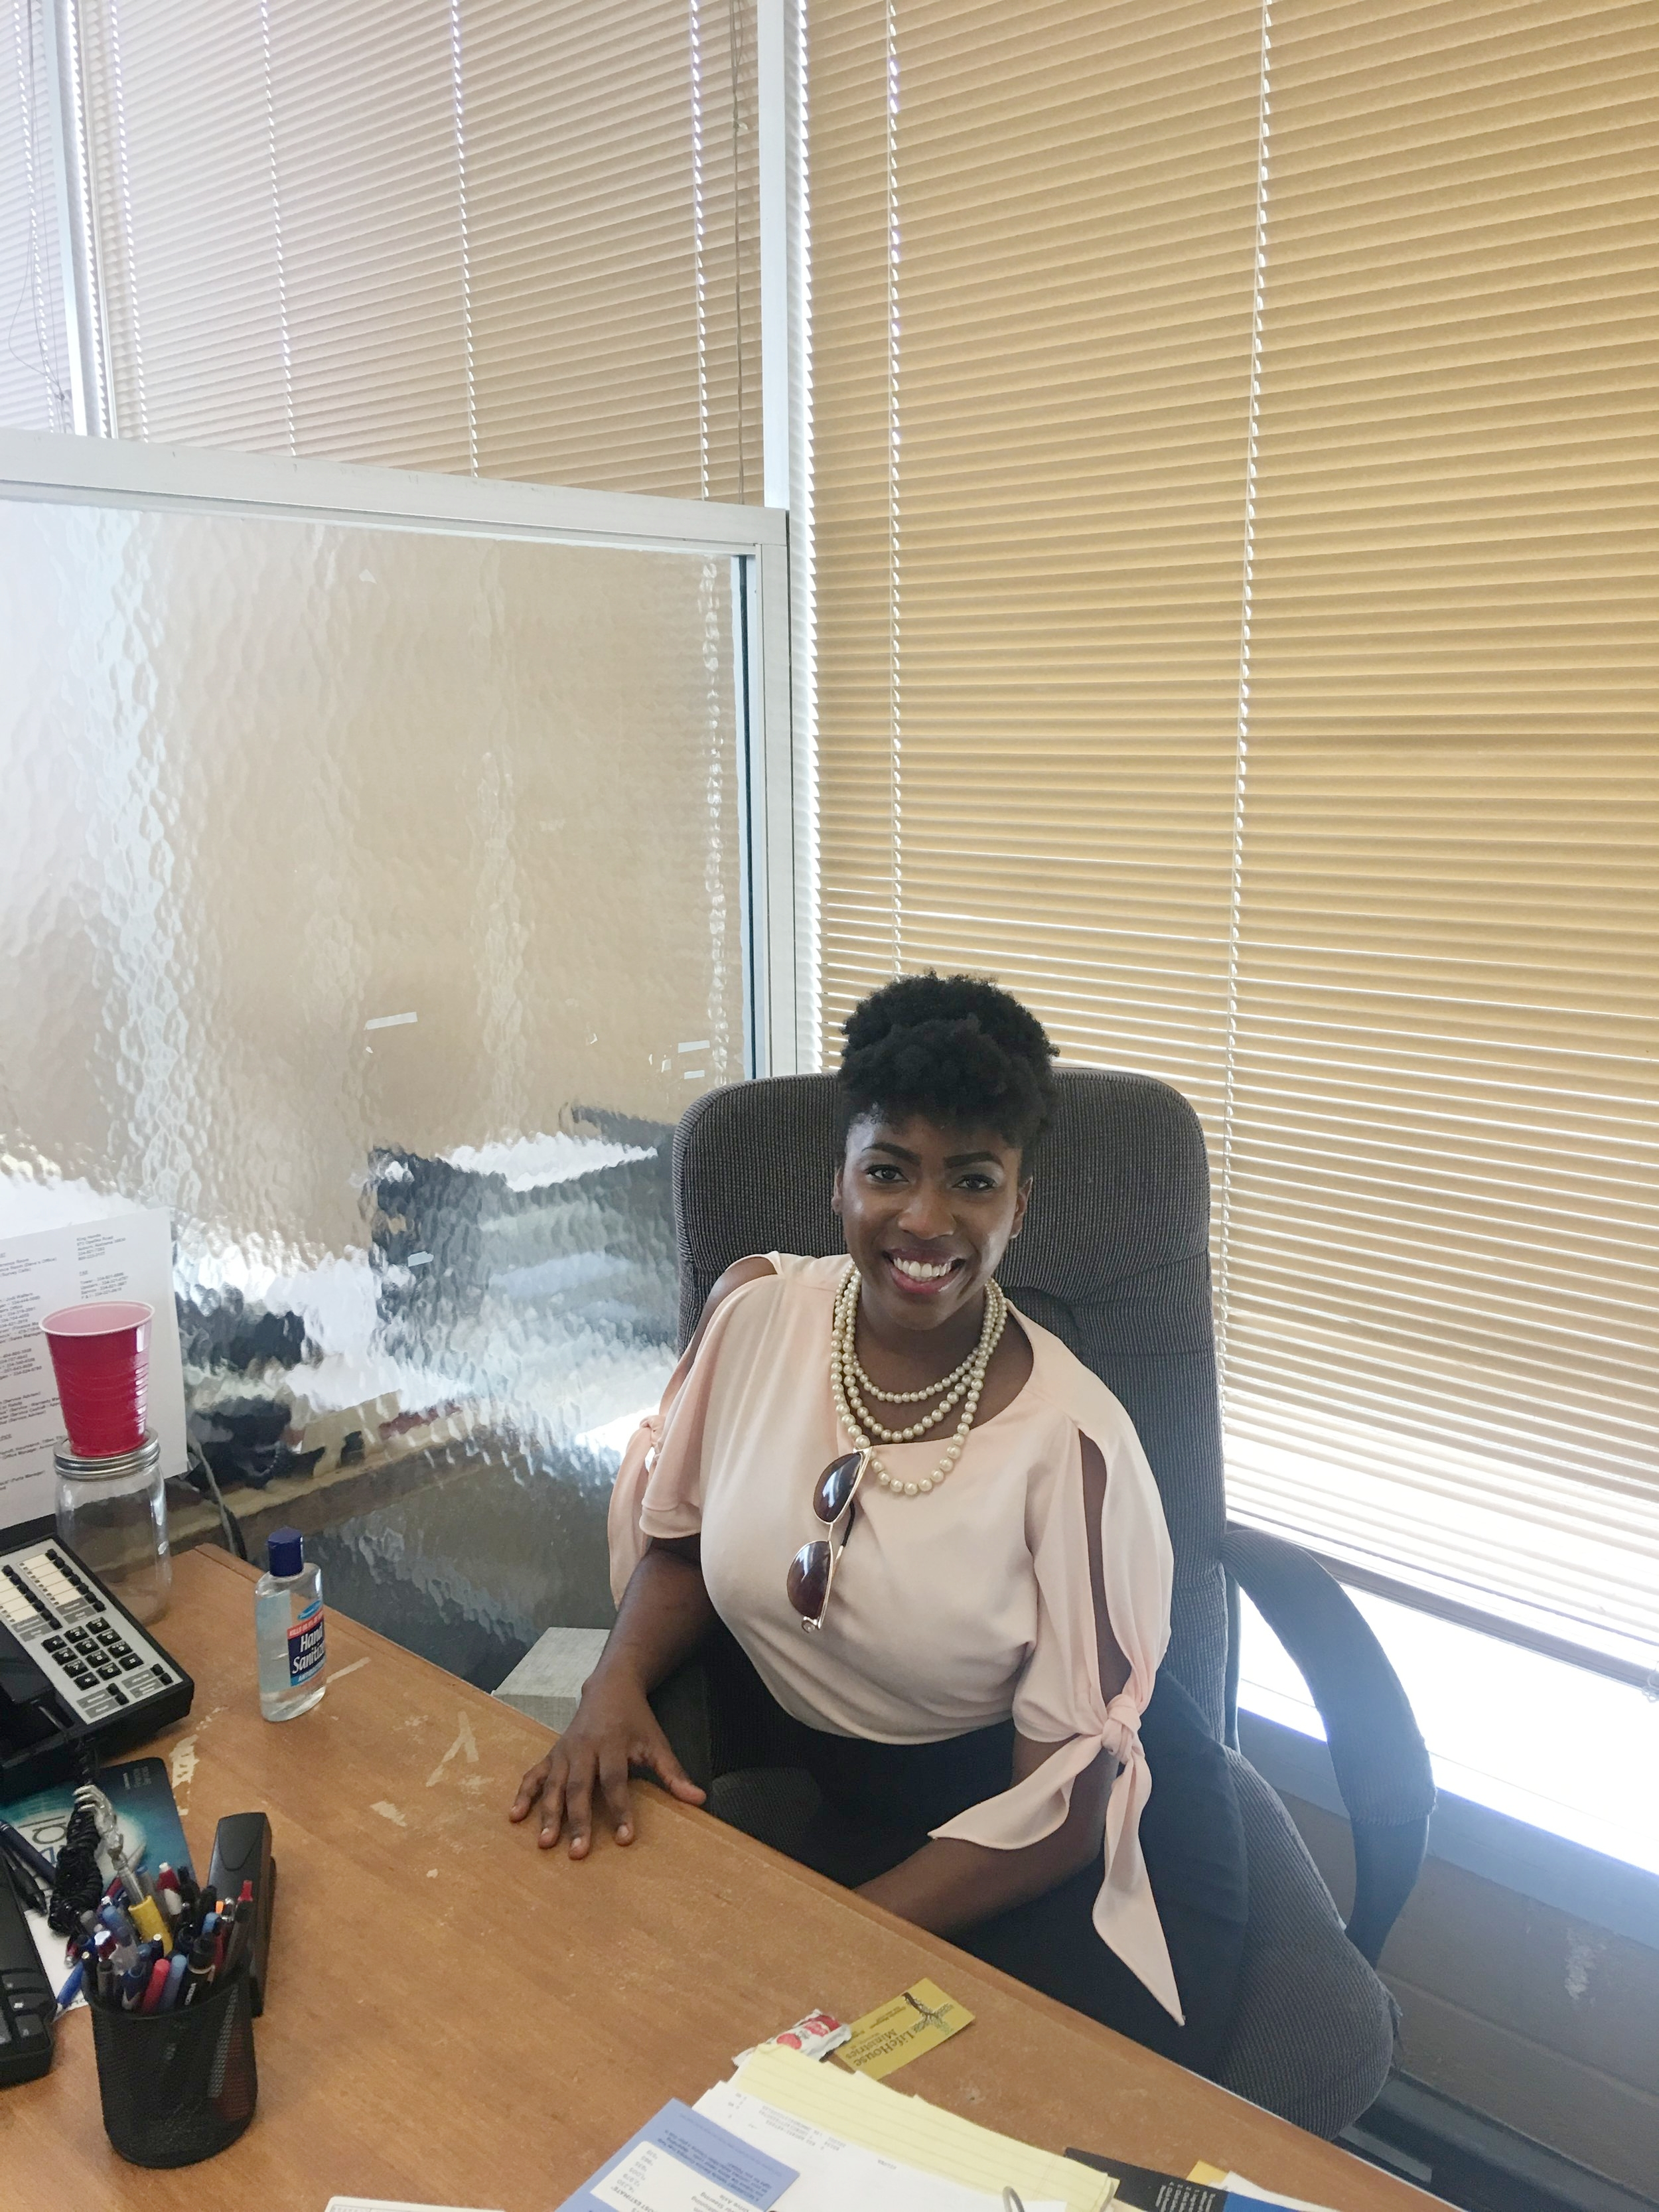 Jessica Alexander visited King Honda in May 2018 to reminisce on her time as a car saleswoman and sit in her old cubicle one last time.